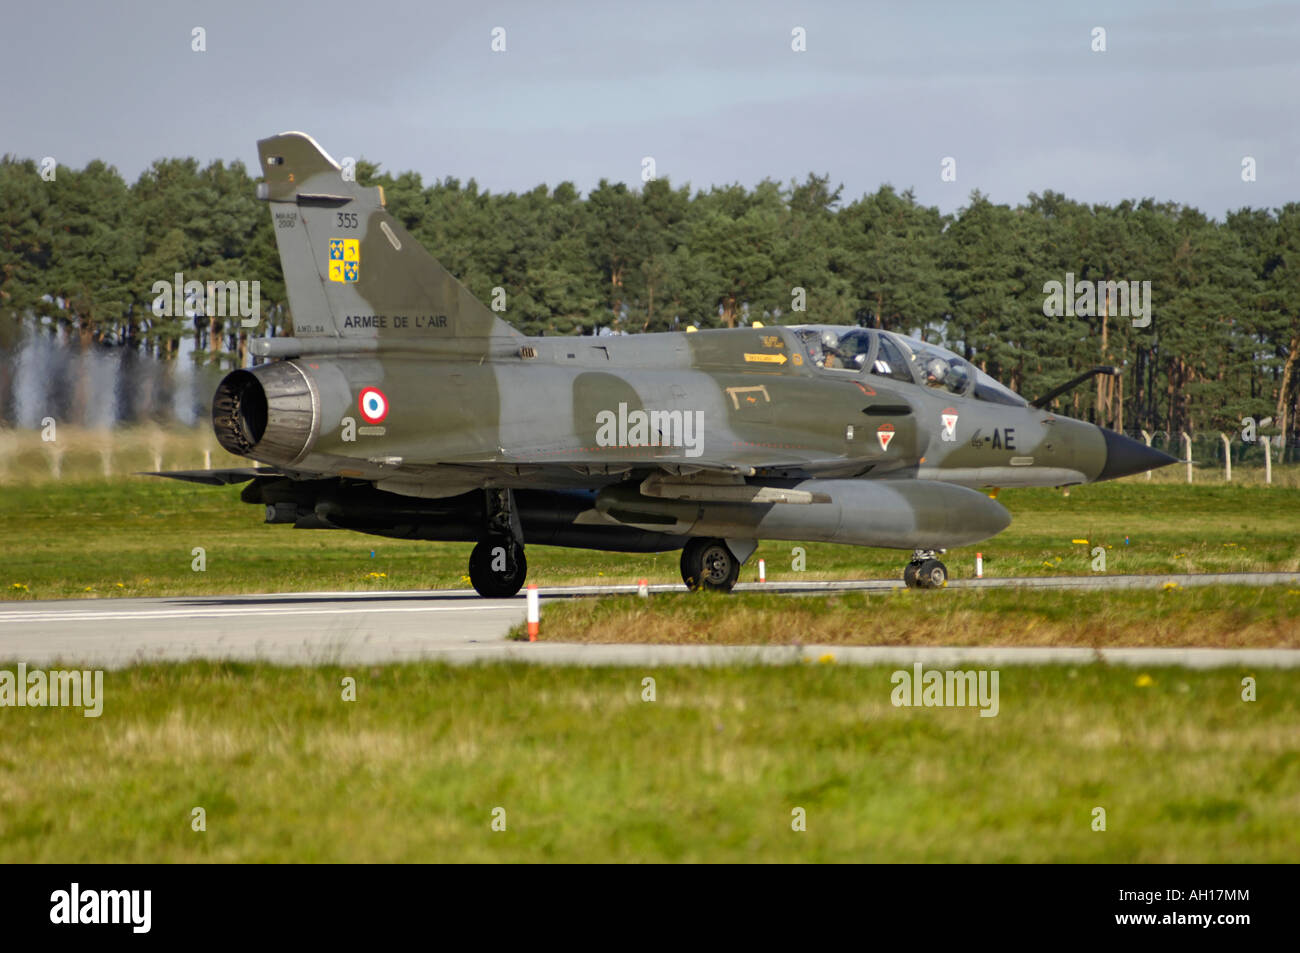 Dassault Mirage 2000N French Marine Navy Two Seat Trainer Variant Air Superiority Attack Fighter Jet Stock Photo